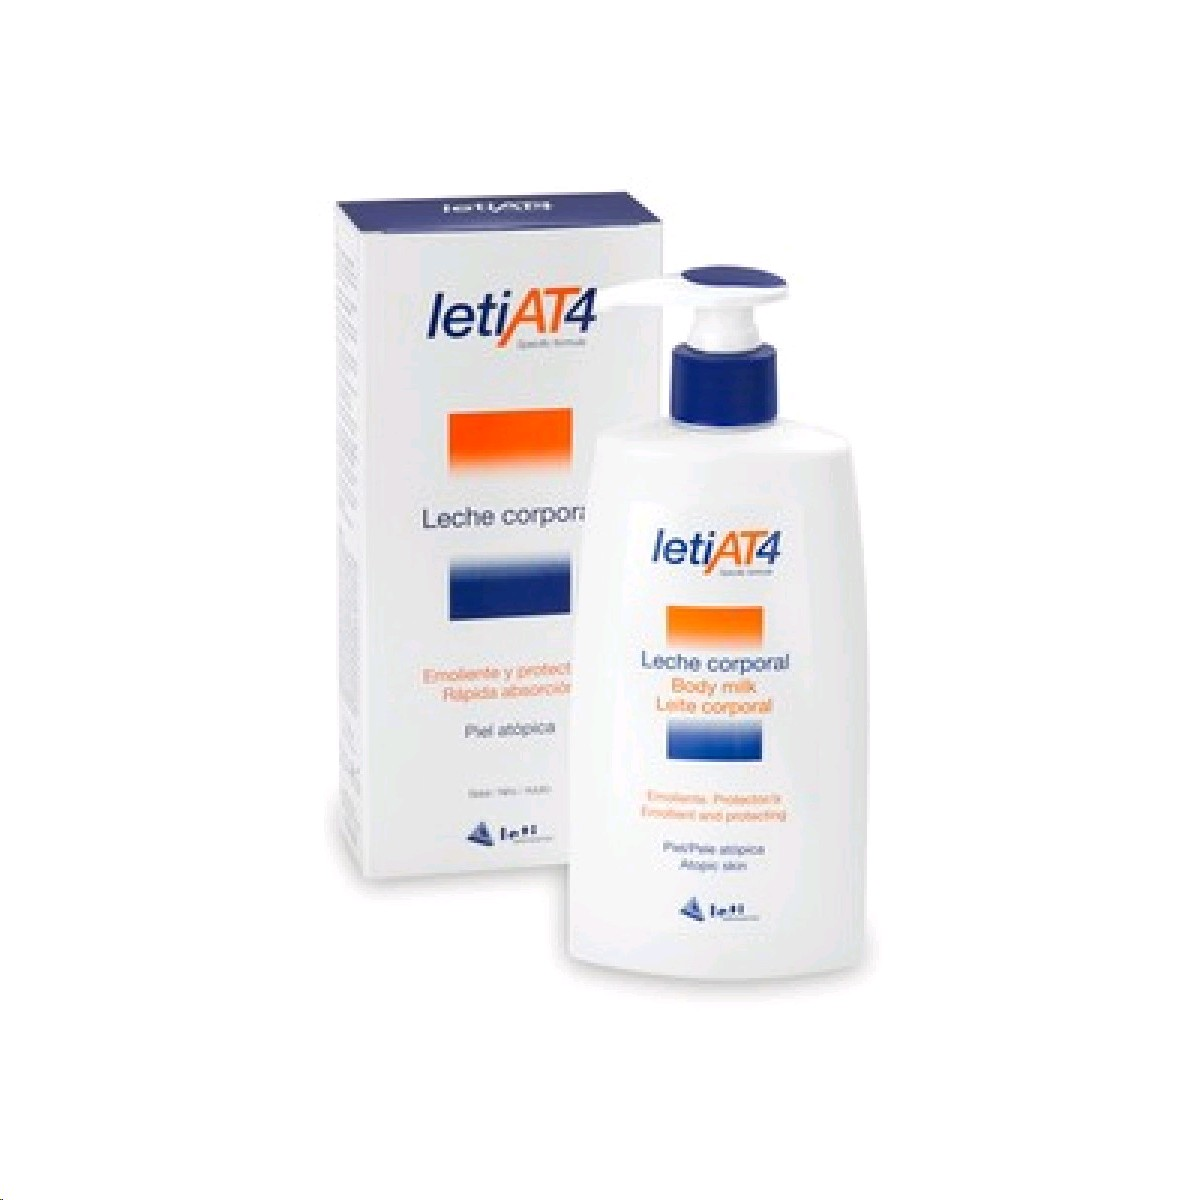 LETI AT4 LLET CORPORAL 500 ML